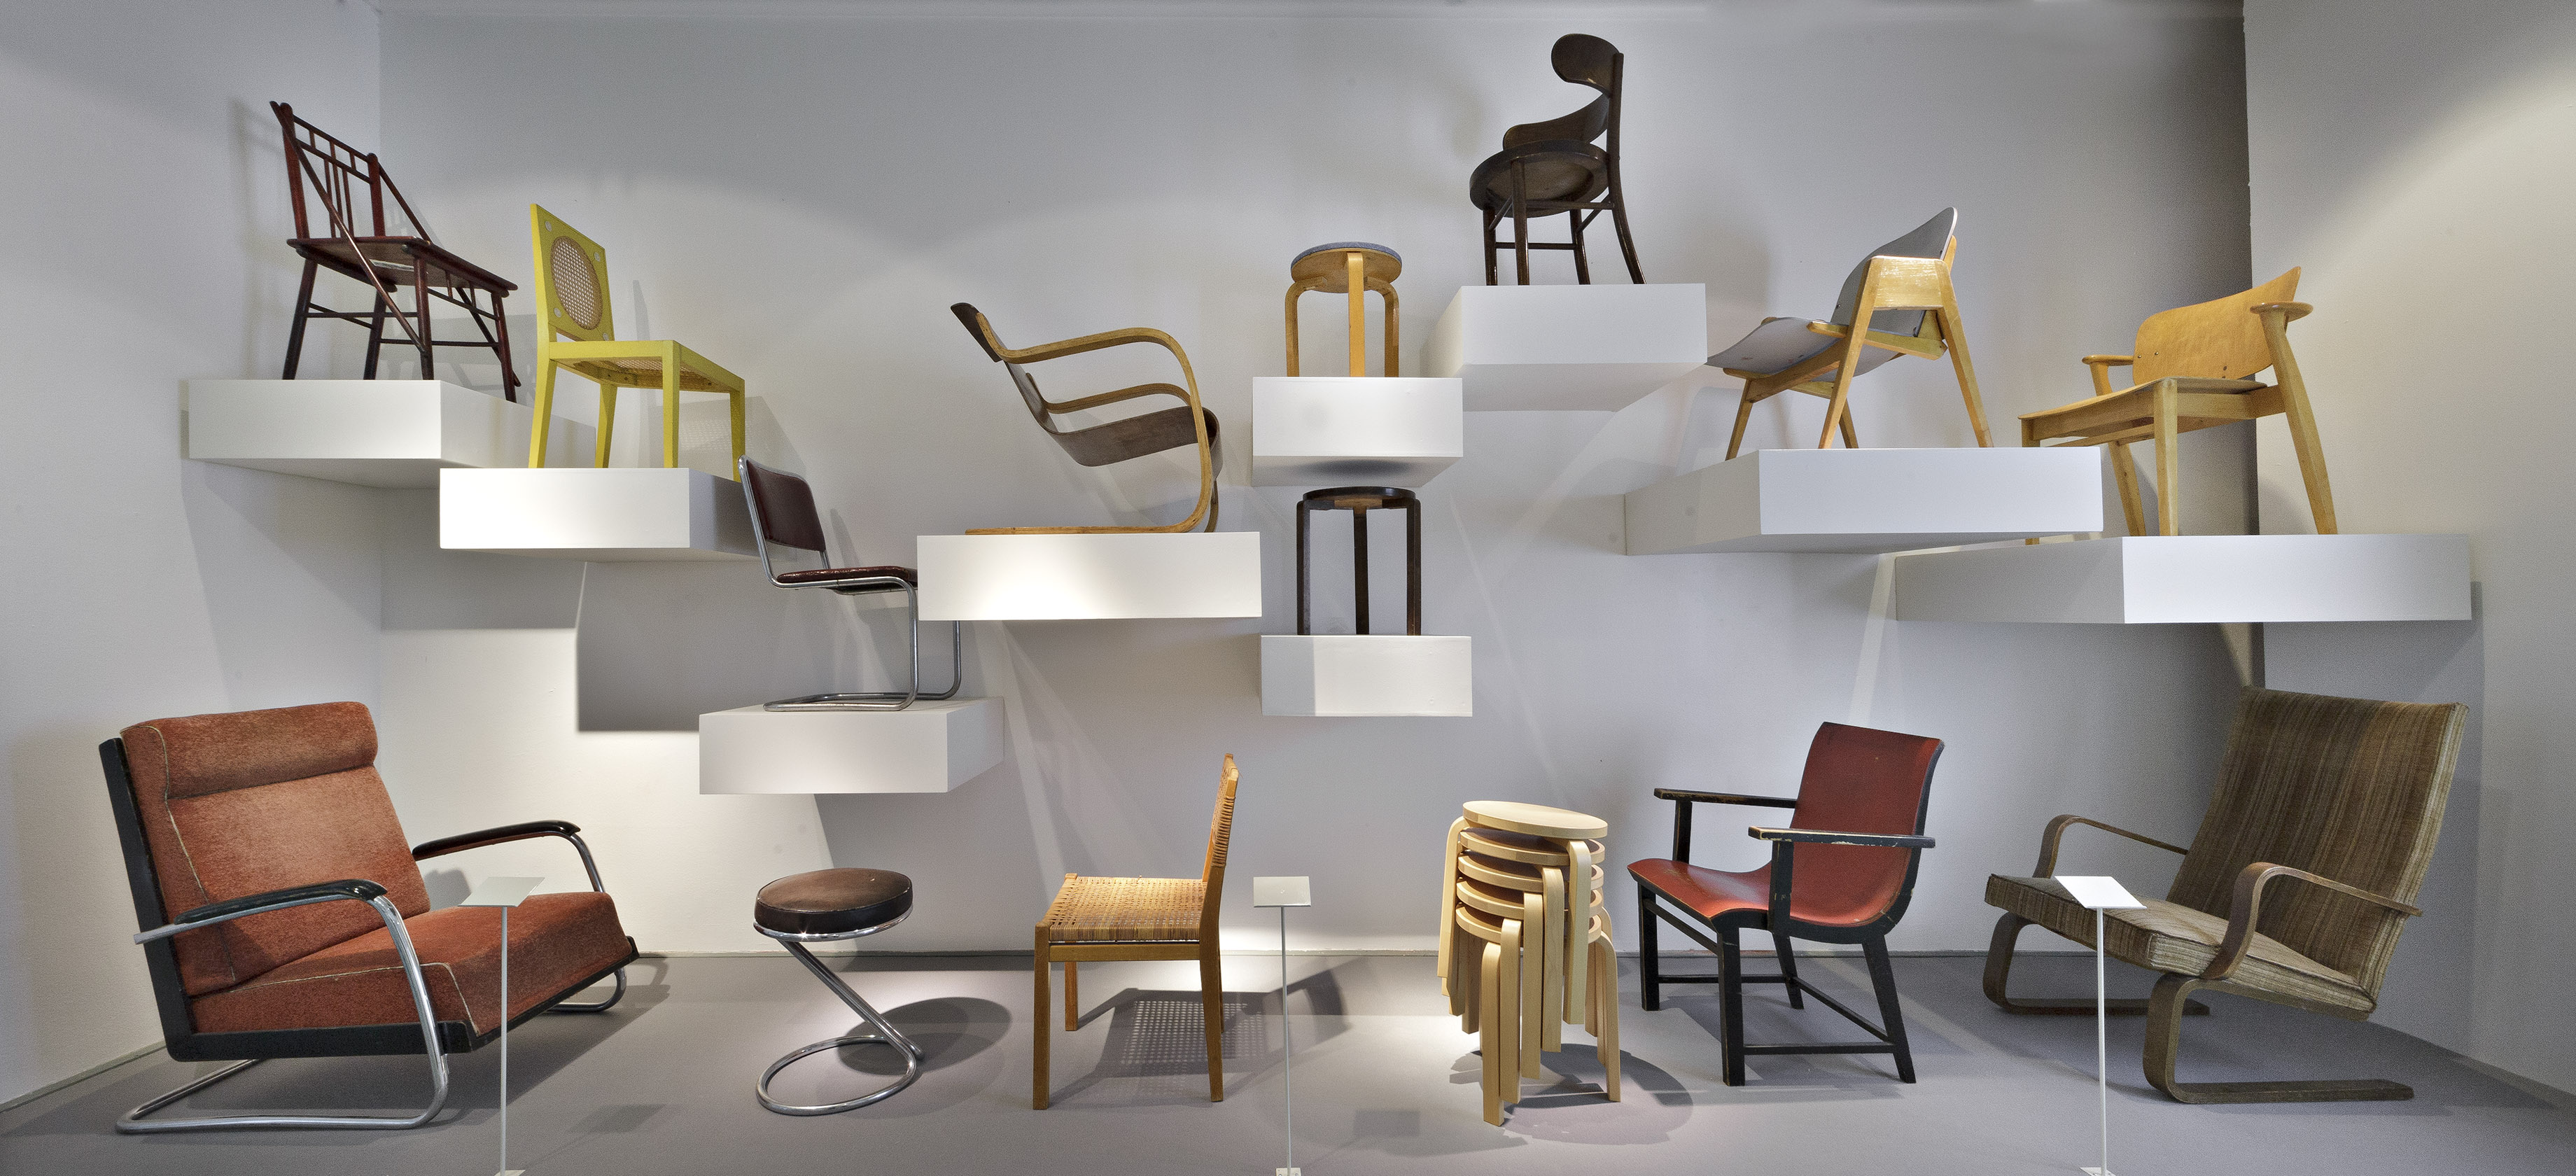 A collection of chairs at the Design Museum in Helsinki. The chairs are all different and are positioned on shelves of varying heights.